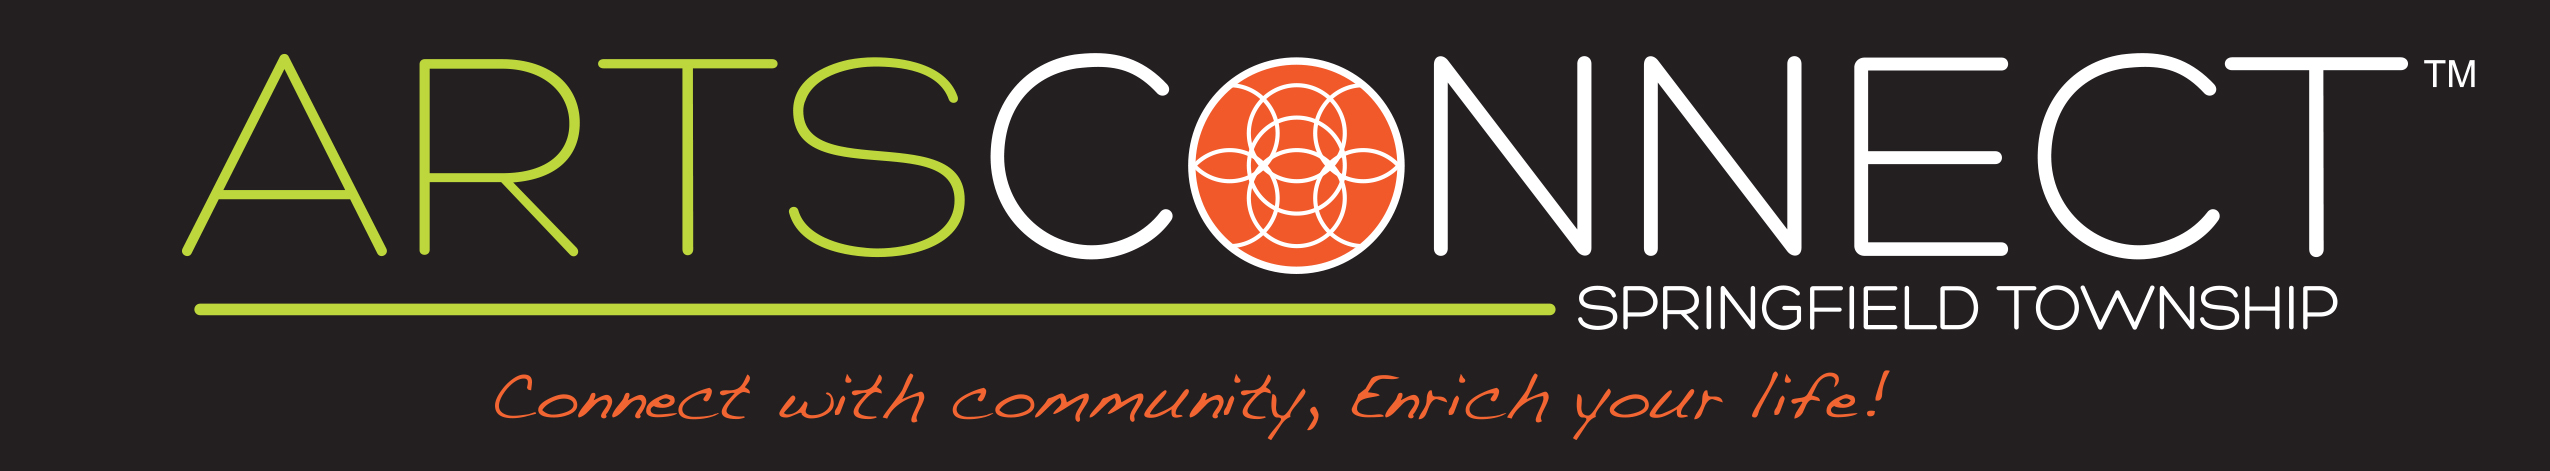 ArtsConnect logo- tagline on black.jpg